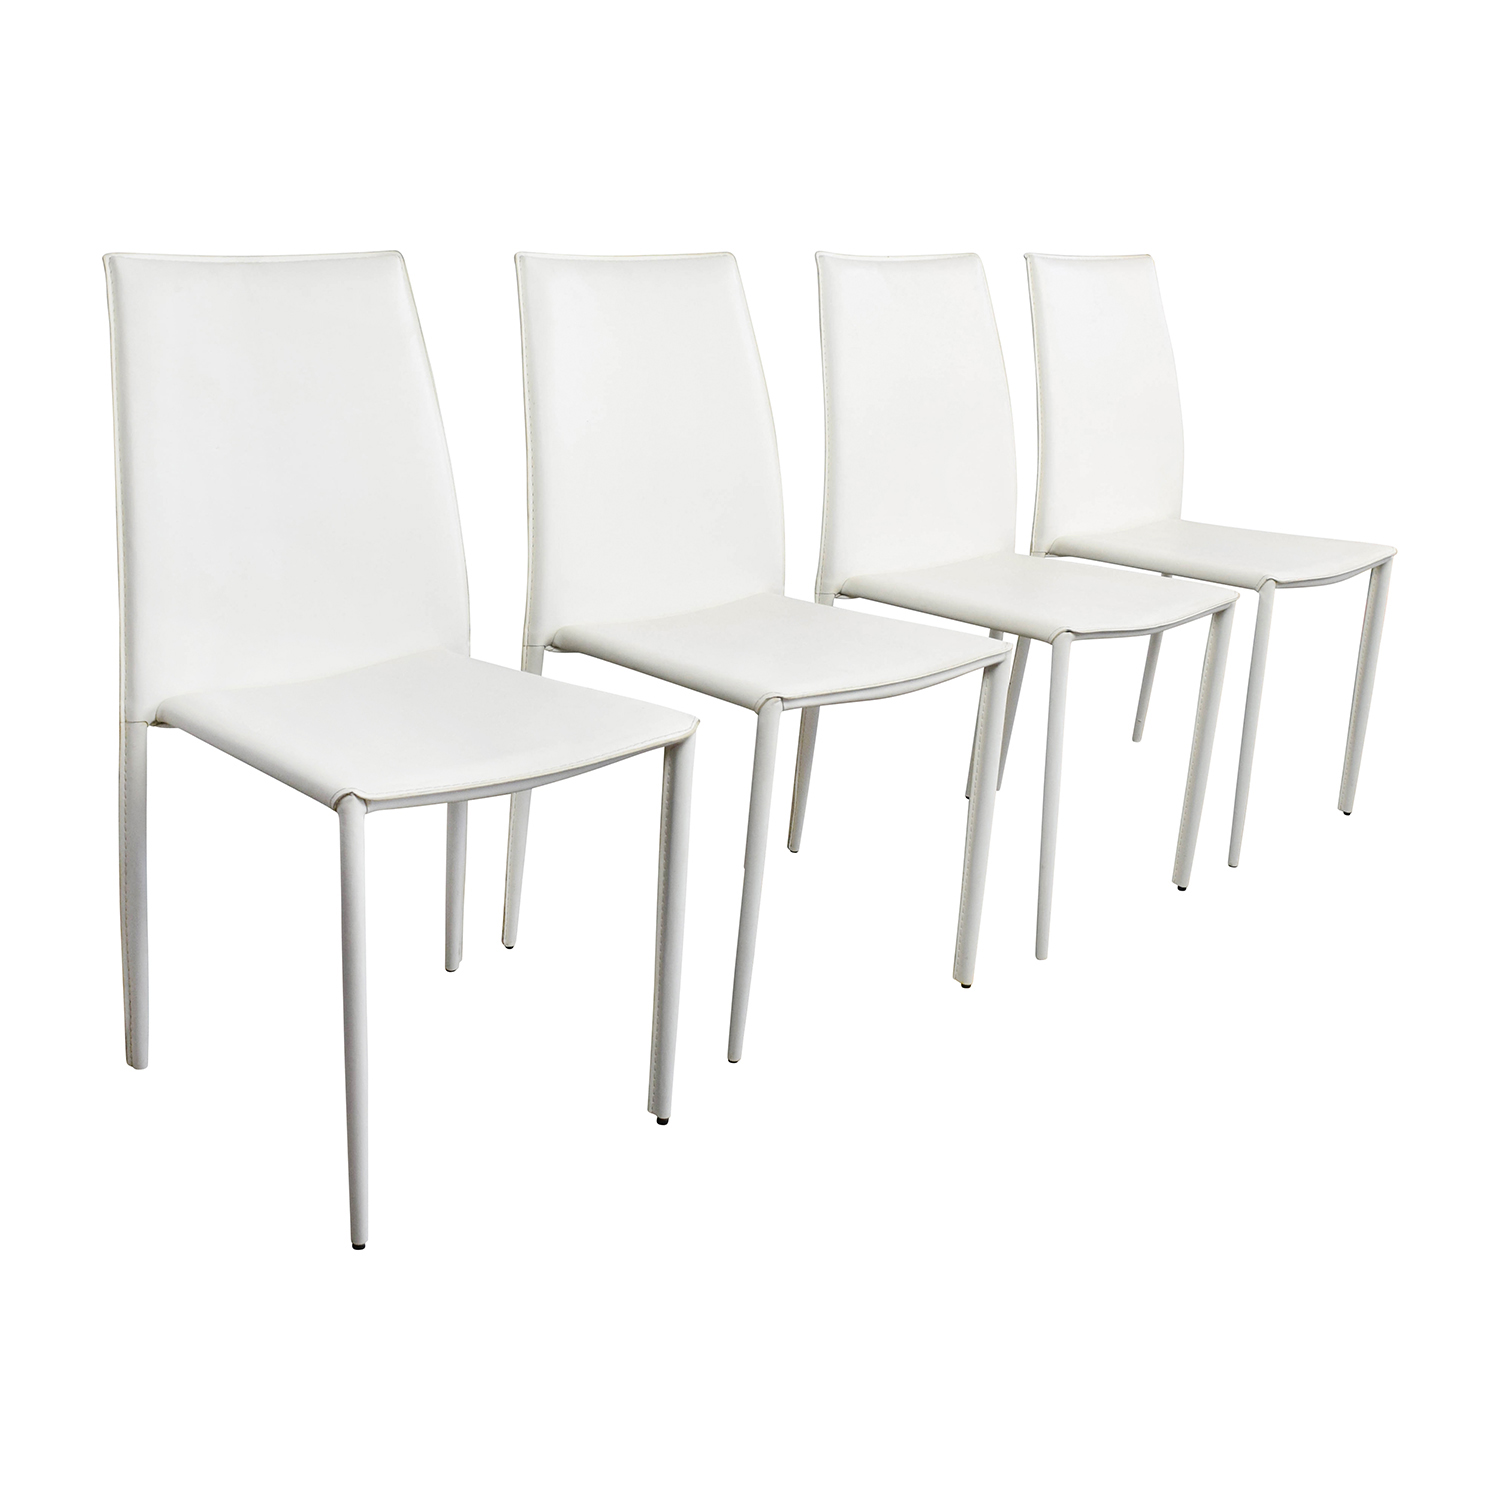 Modern White Dining Chair 77 Off All Modern All Modern White Leather Dining